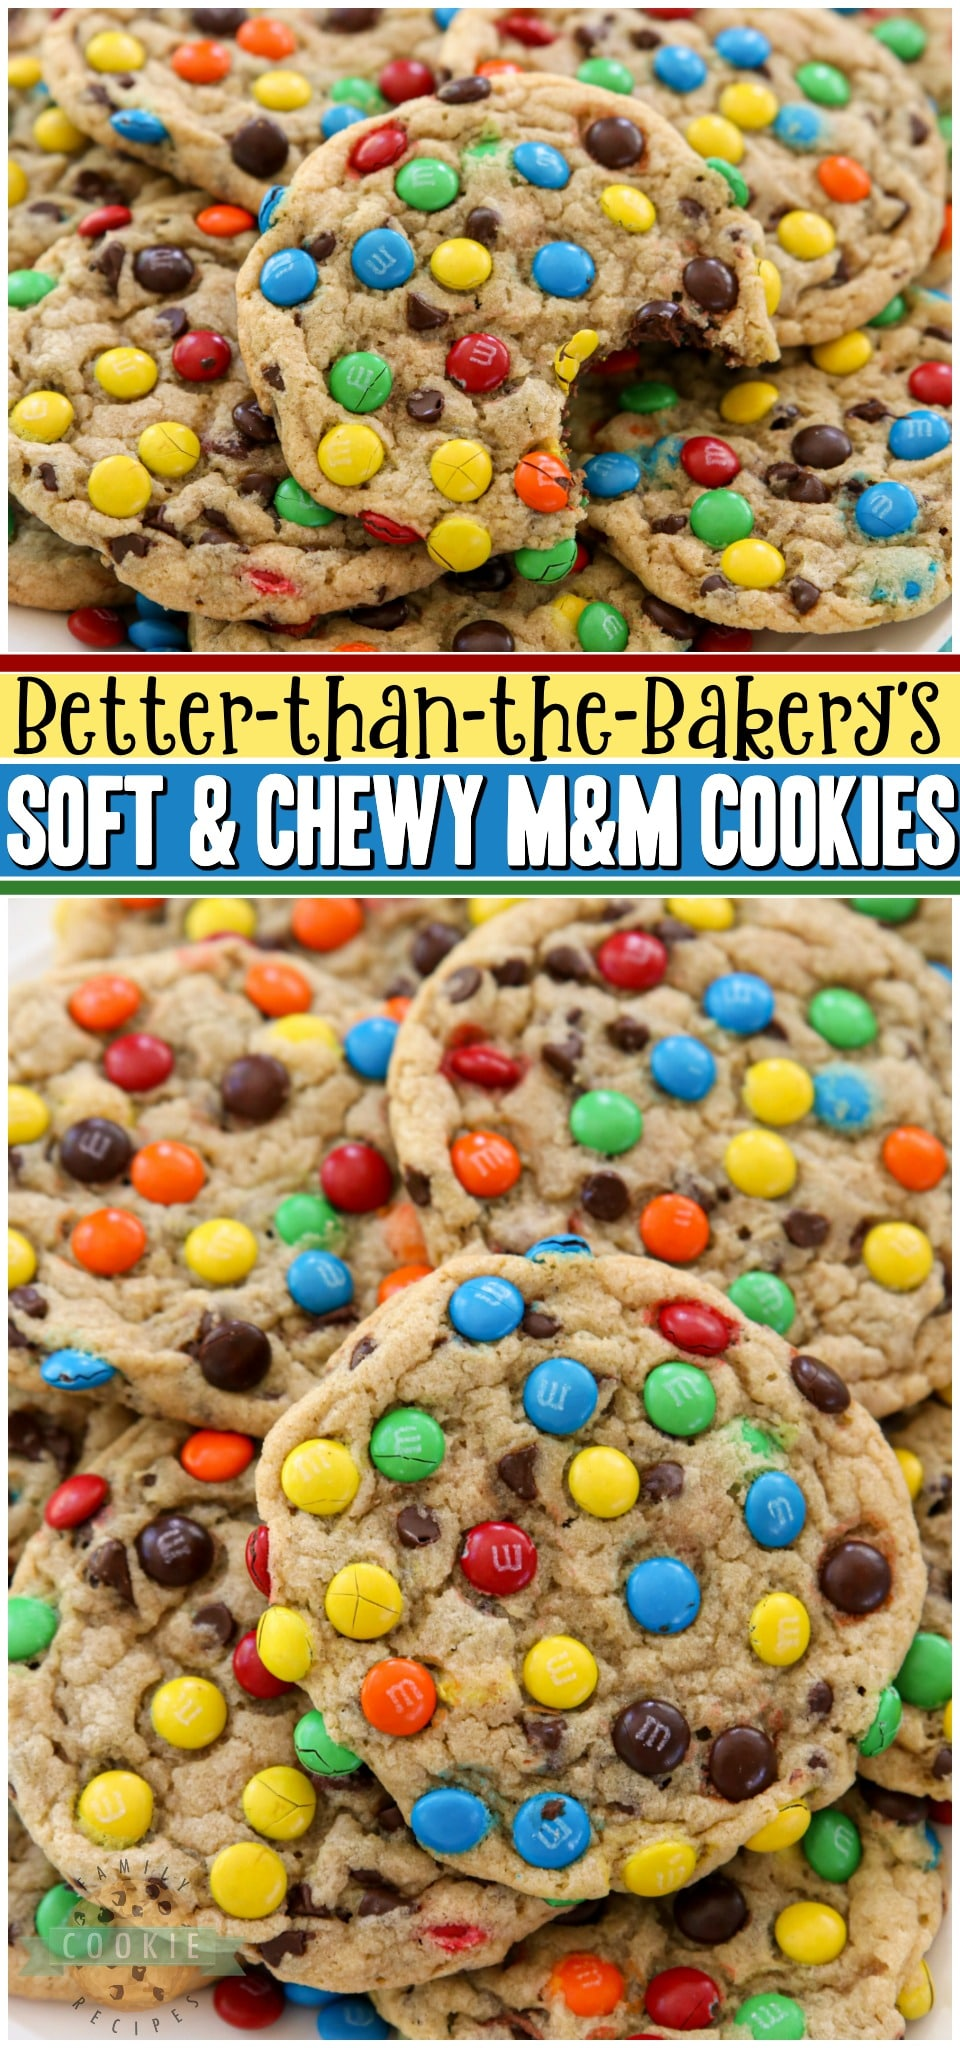 Soft & Chewy M&M Cookies made with butter, sugars, pudding mix & M&M's candy! Easy tip for coating your cookies PERFECTLY with M&M's! BEST #M&M Cookie recipe ever!#cookies #recipe #baking #dessert #softcookies #M&Mcookies from FAMILY COOKIE RECIPES via @familycookierecipes